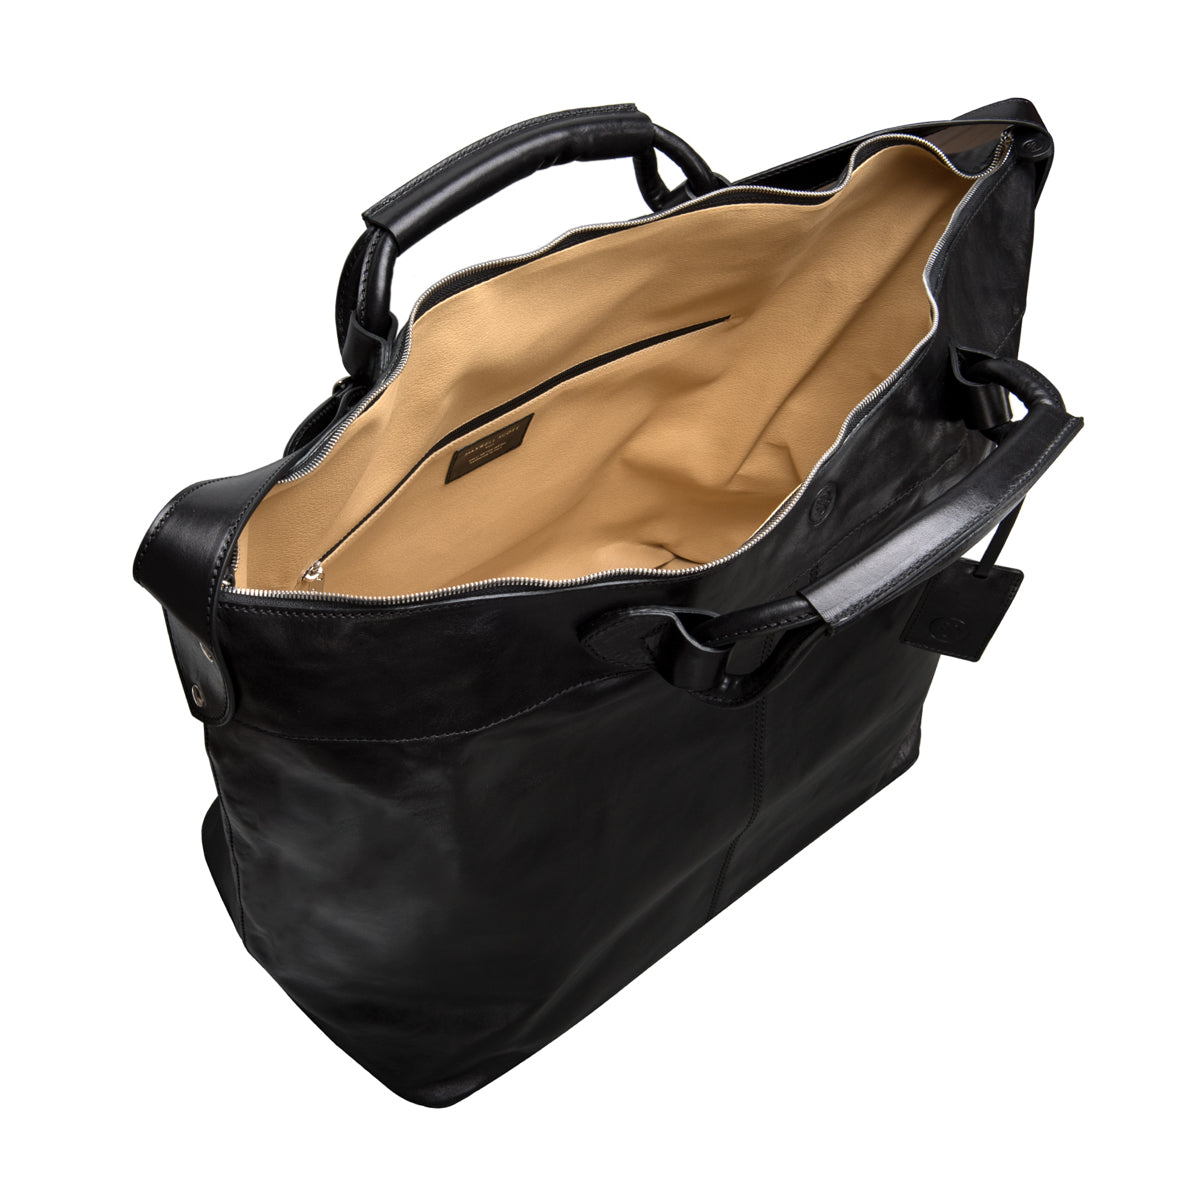 Image 5 of the 'Fabrizio' Black Veg-Tanned Leather Holdall